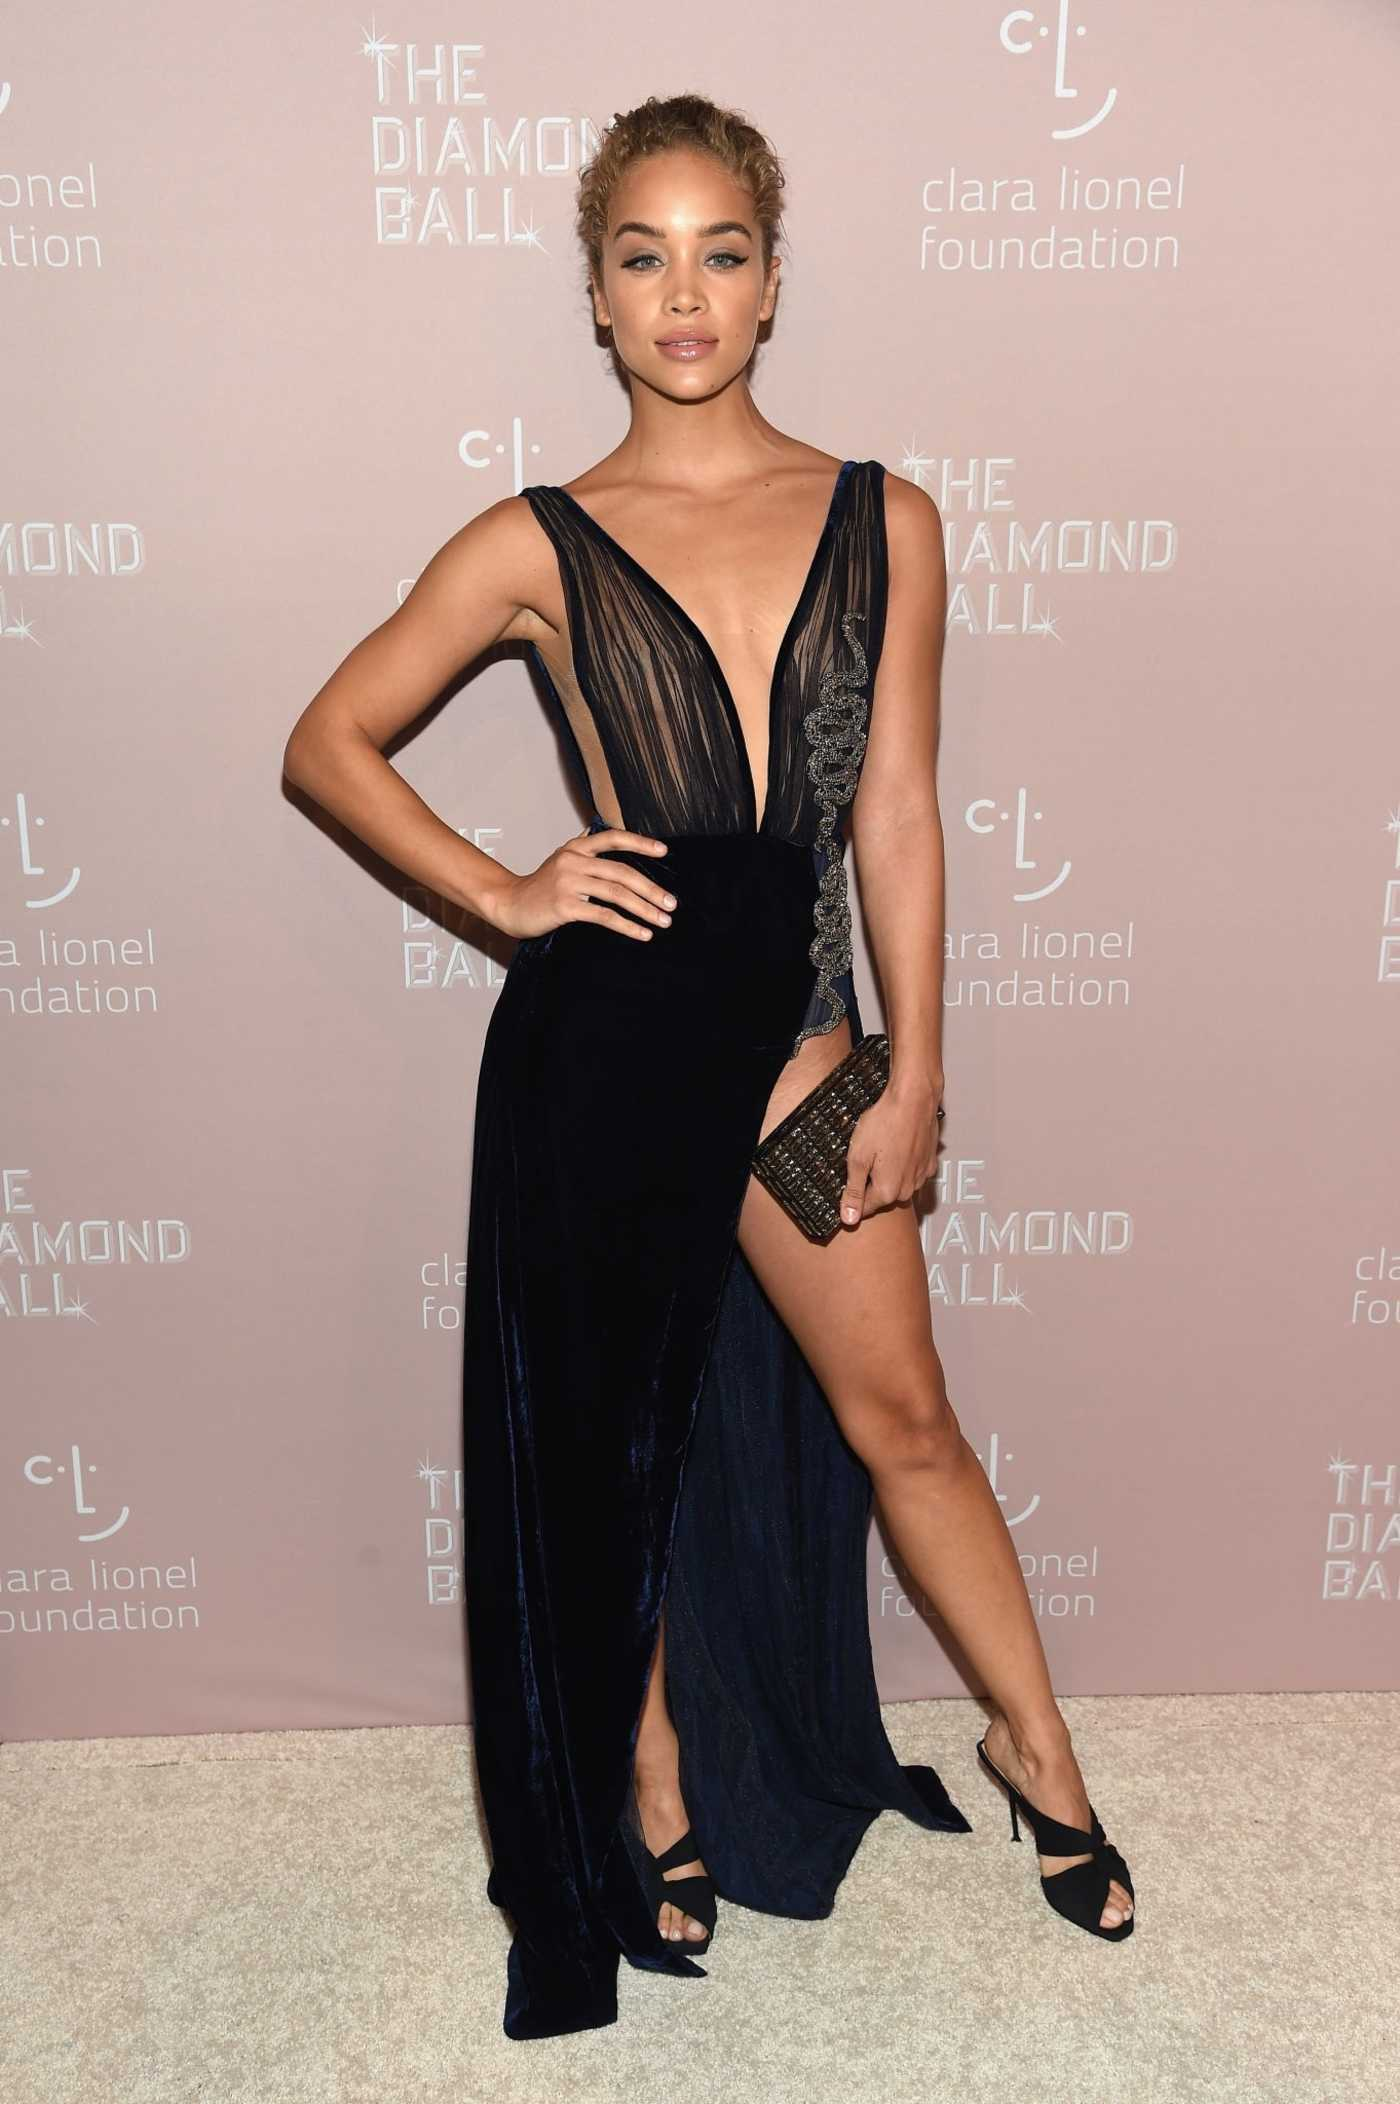 Jasmine Sanders at the 4th Annual Clara Lionel Foundation Diamond Ball in New York 09/13/2018